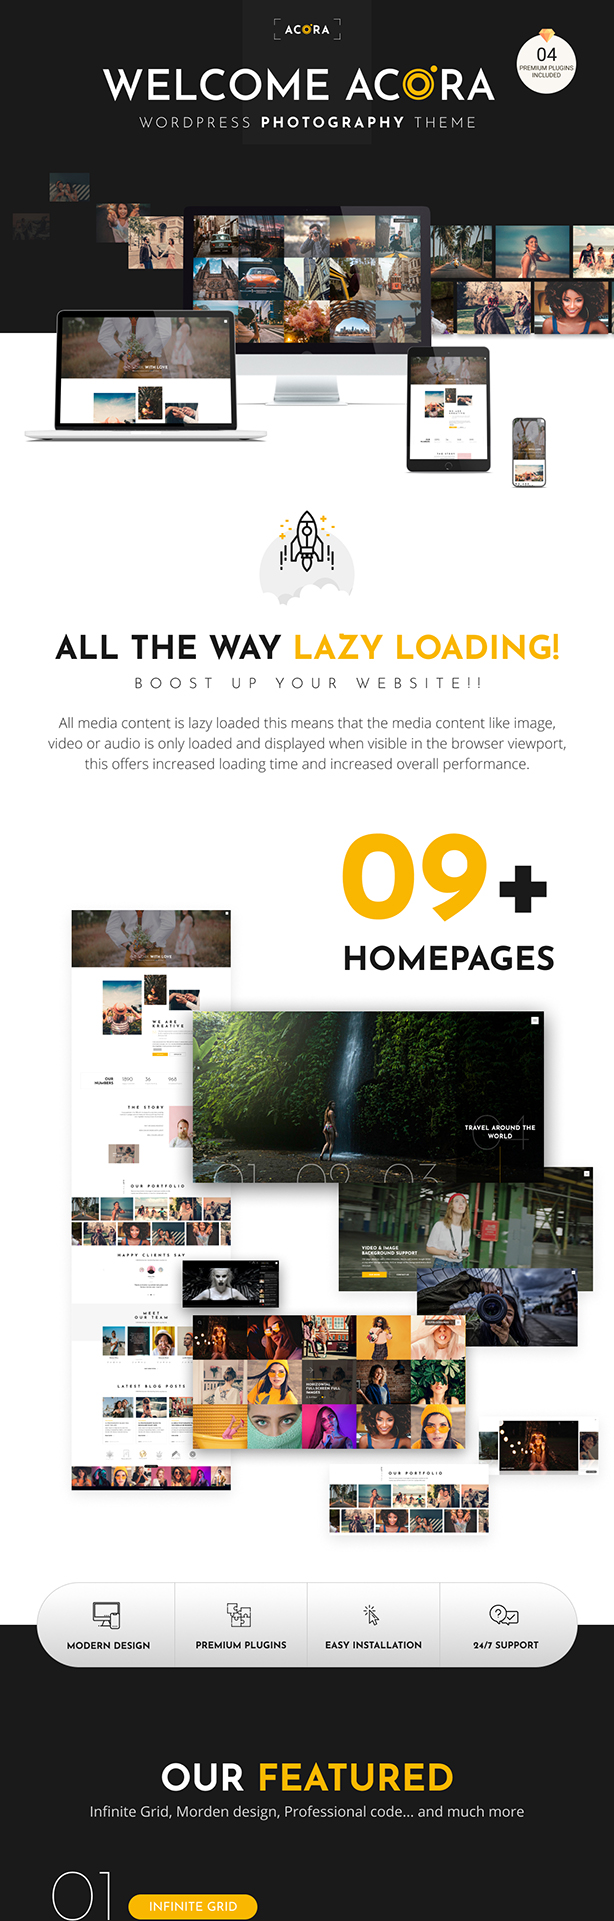 Acora - Photography WordPress Theme - 1